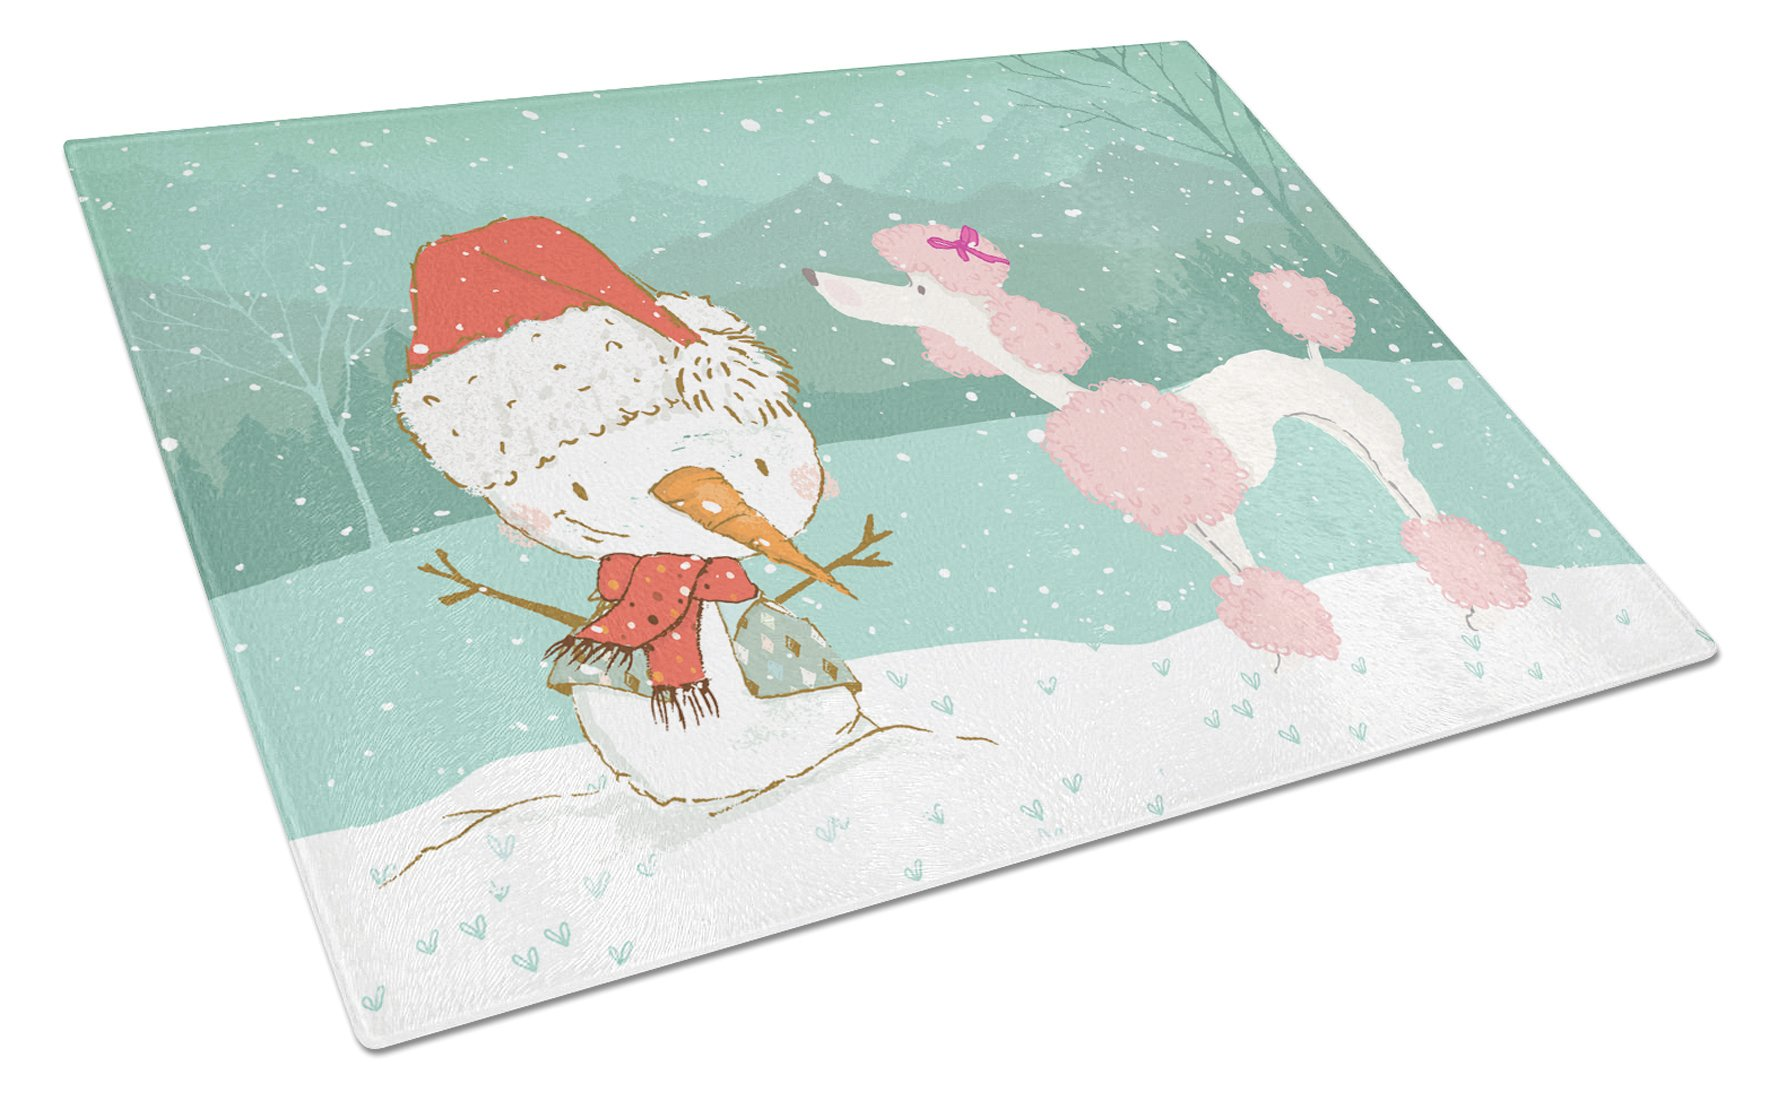 Pink Poodle Snowman Christmas Glass Cutting Board Large CK2066LCB by Caroline's Treasures